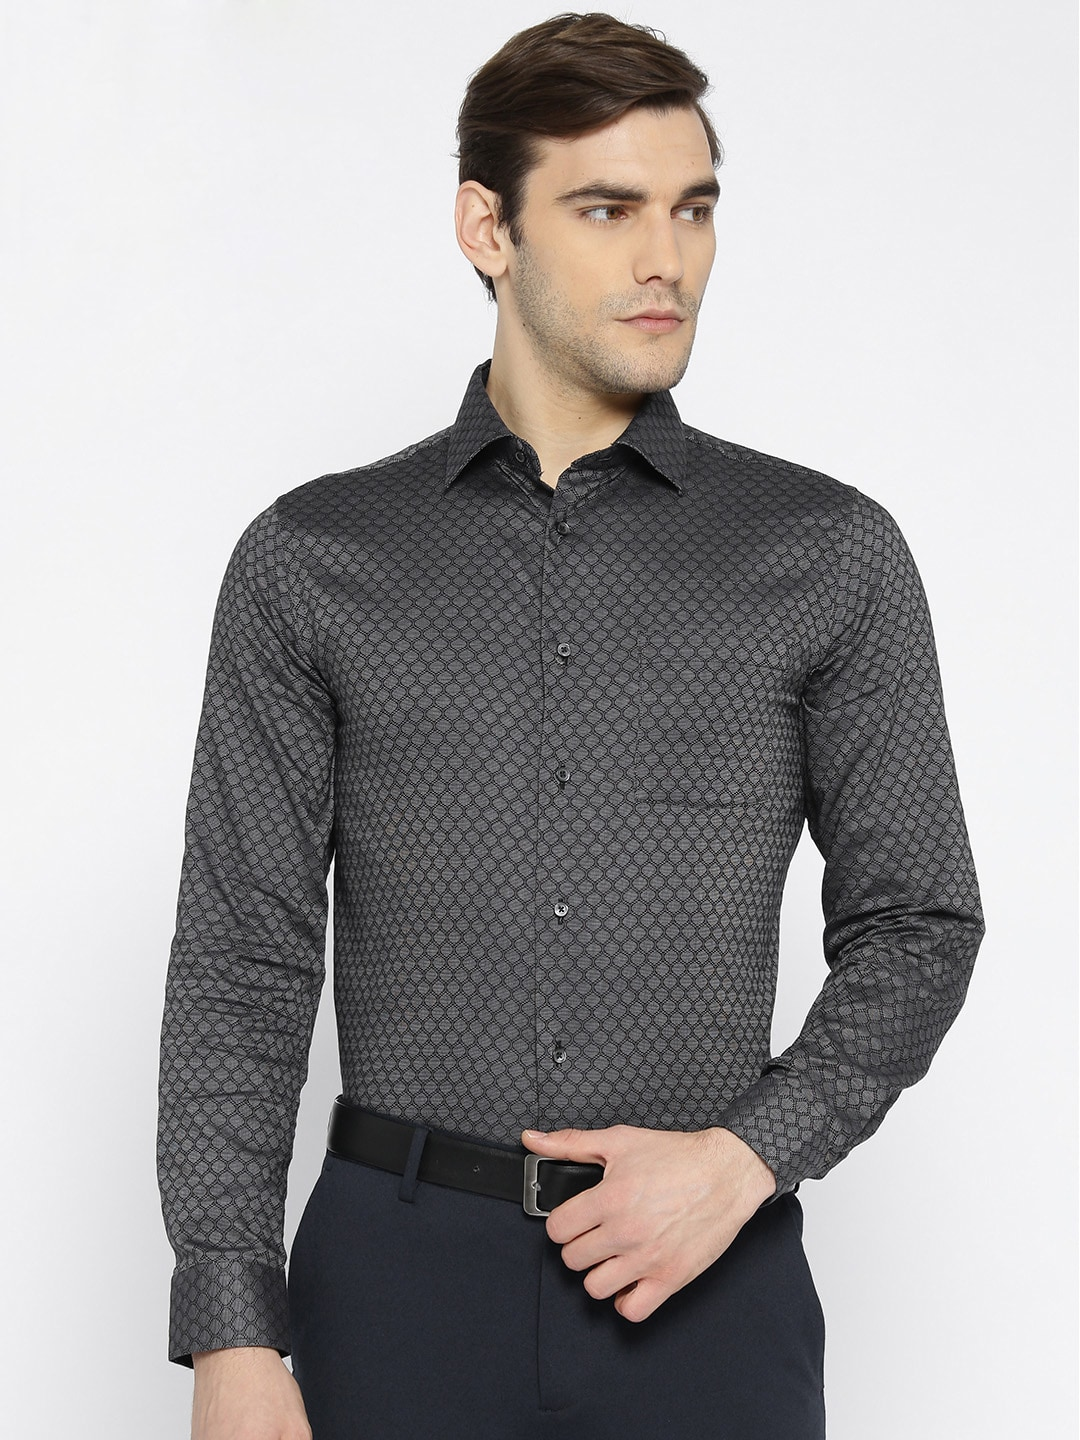 50b4ce97809 Black Party Shirts - Buy Black Party Shirts online in India